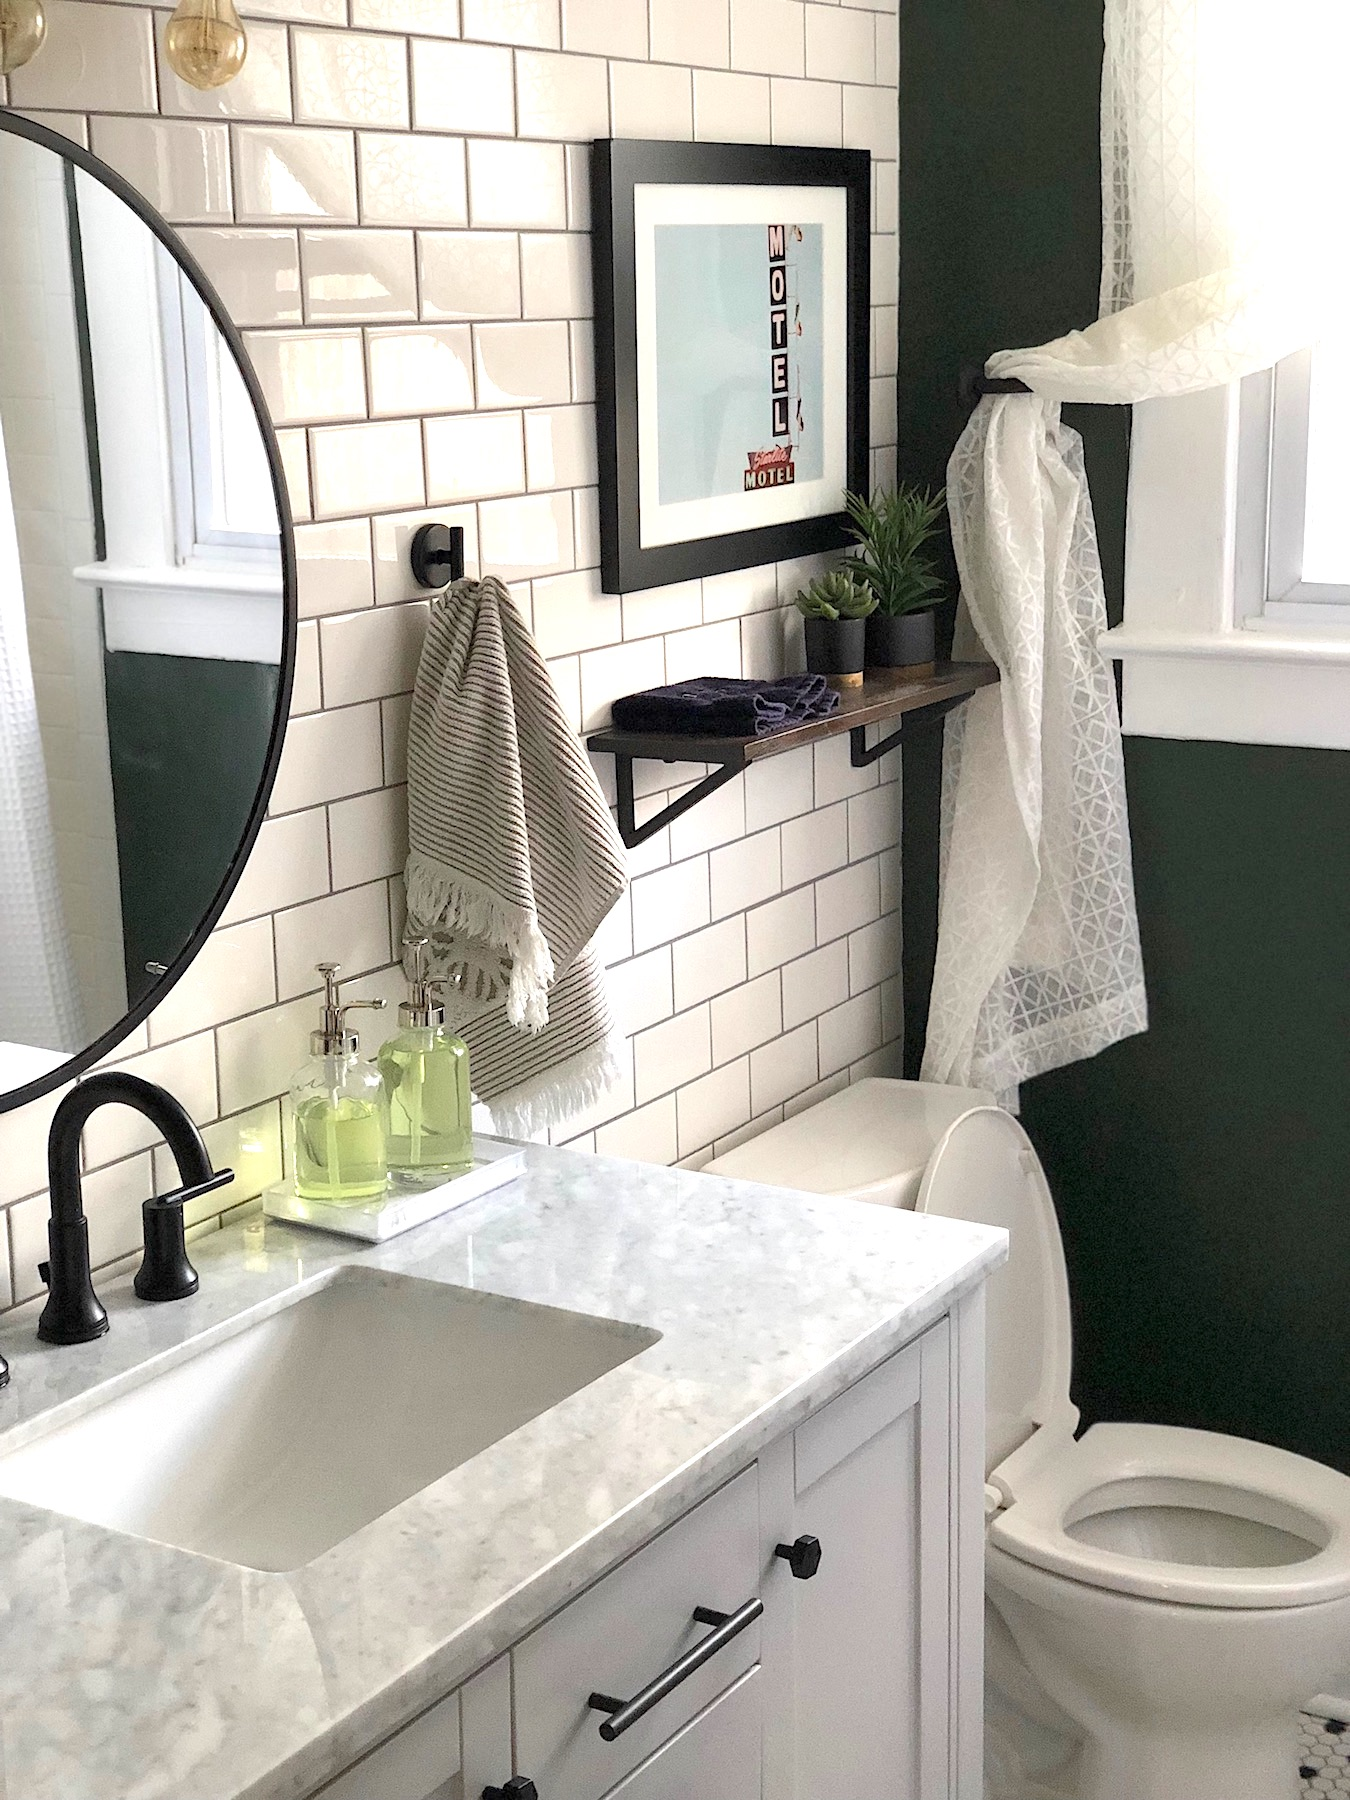 3 Brilliant Ways to Sneak More Storage Into a Small Bathroom